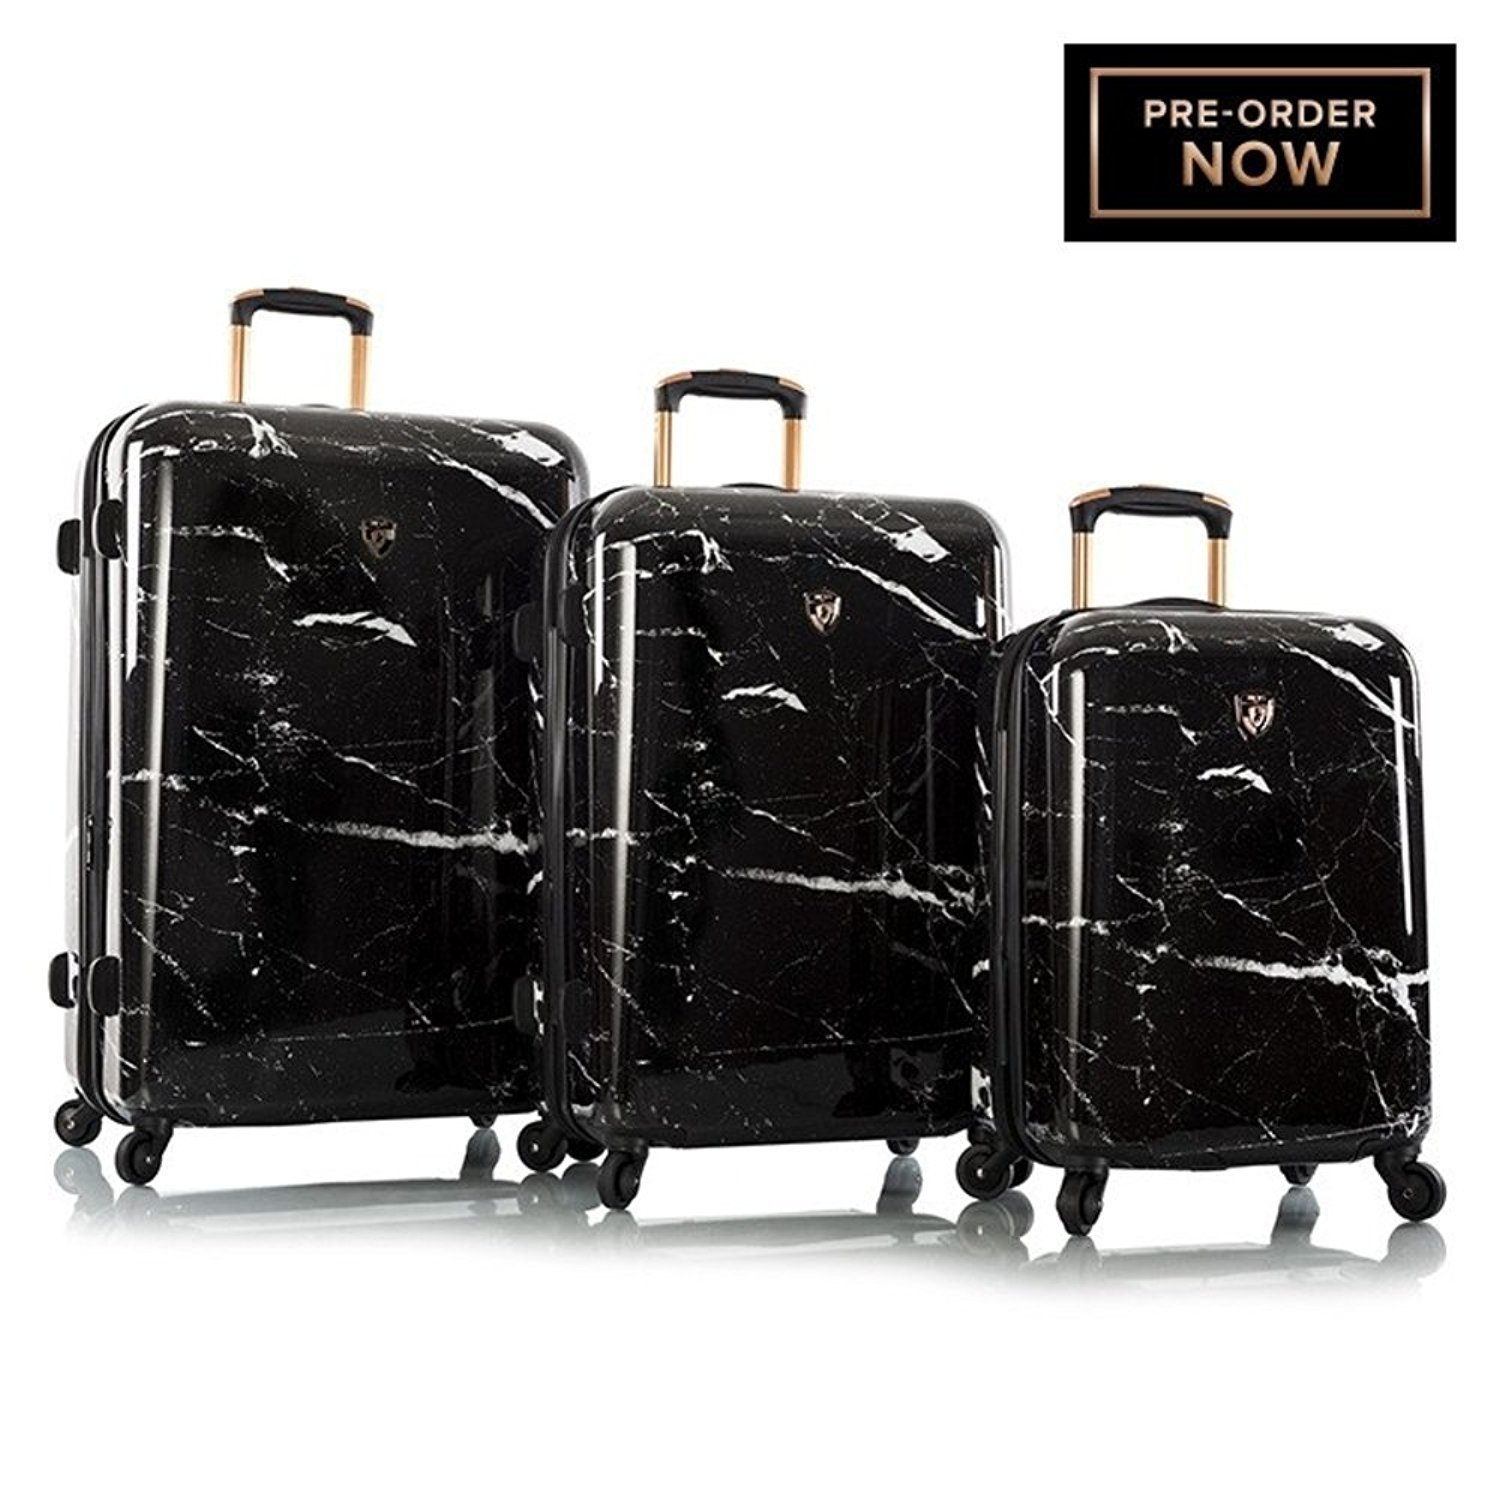 Hey's Marquina Fashion Spinne 3pc Set by Heys